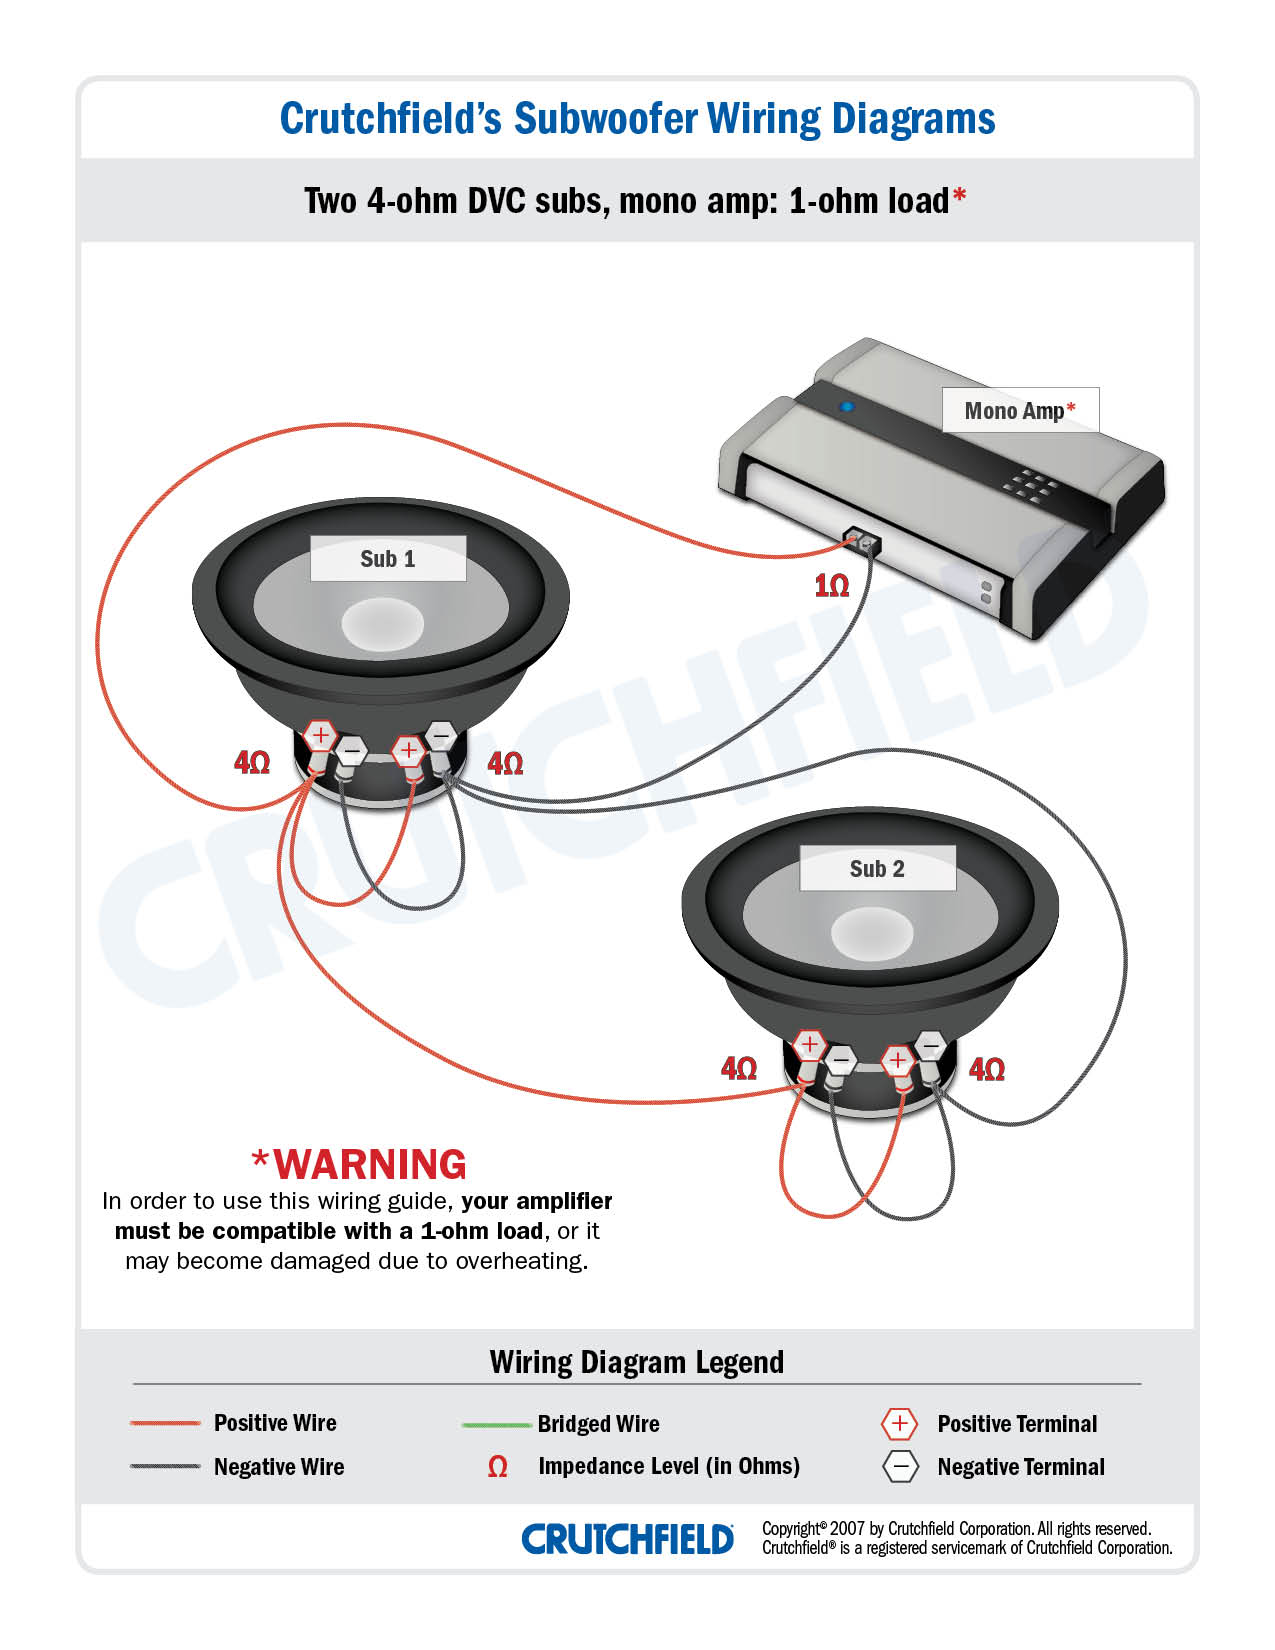 subwoofer wiring diagrams \u2014 how to wire your substwo dvc 4 ohm can get wired together as a 1 ohm load like this diagram